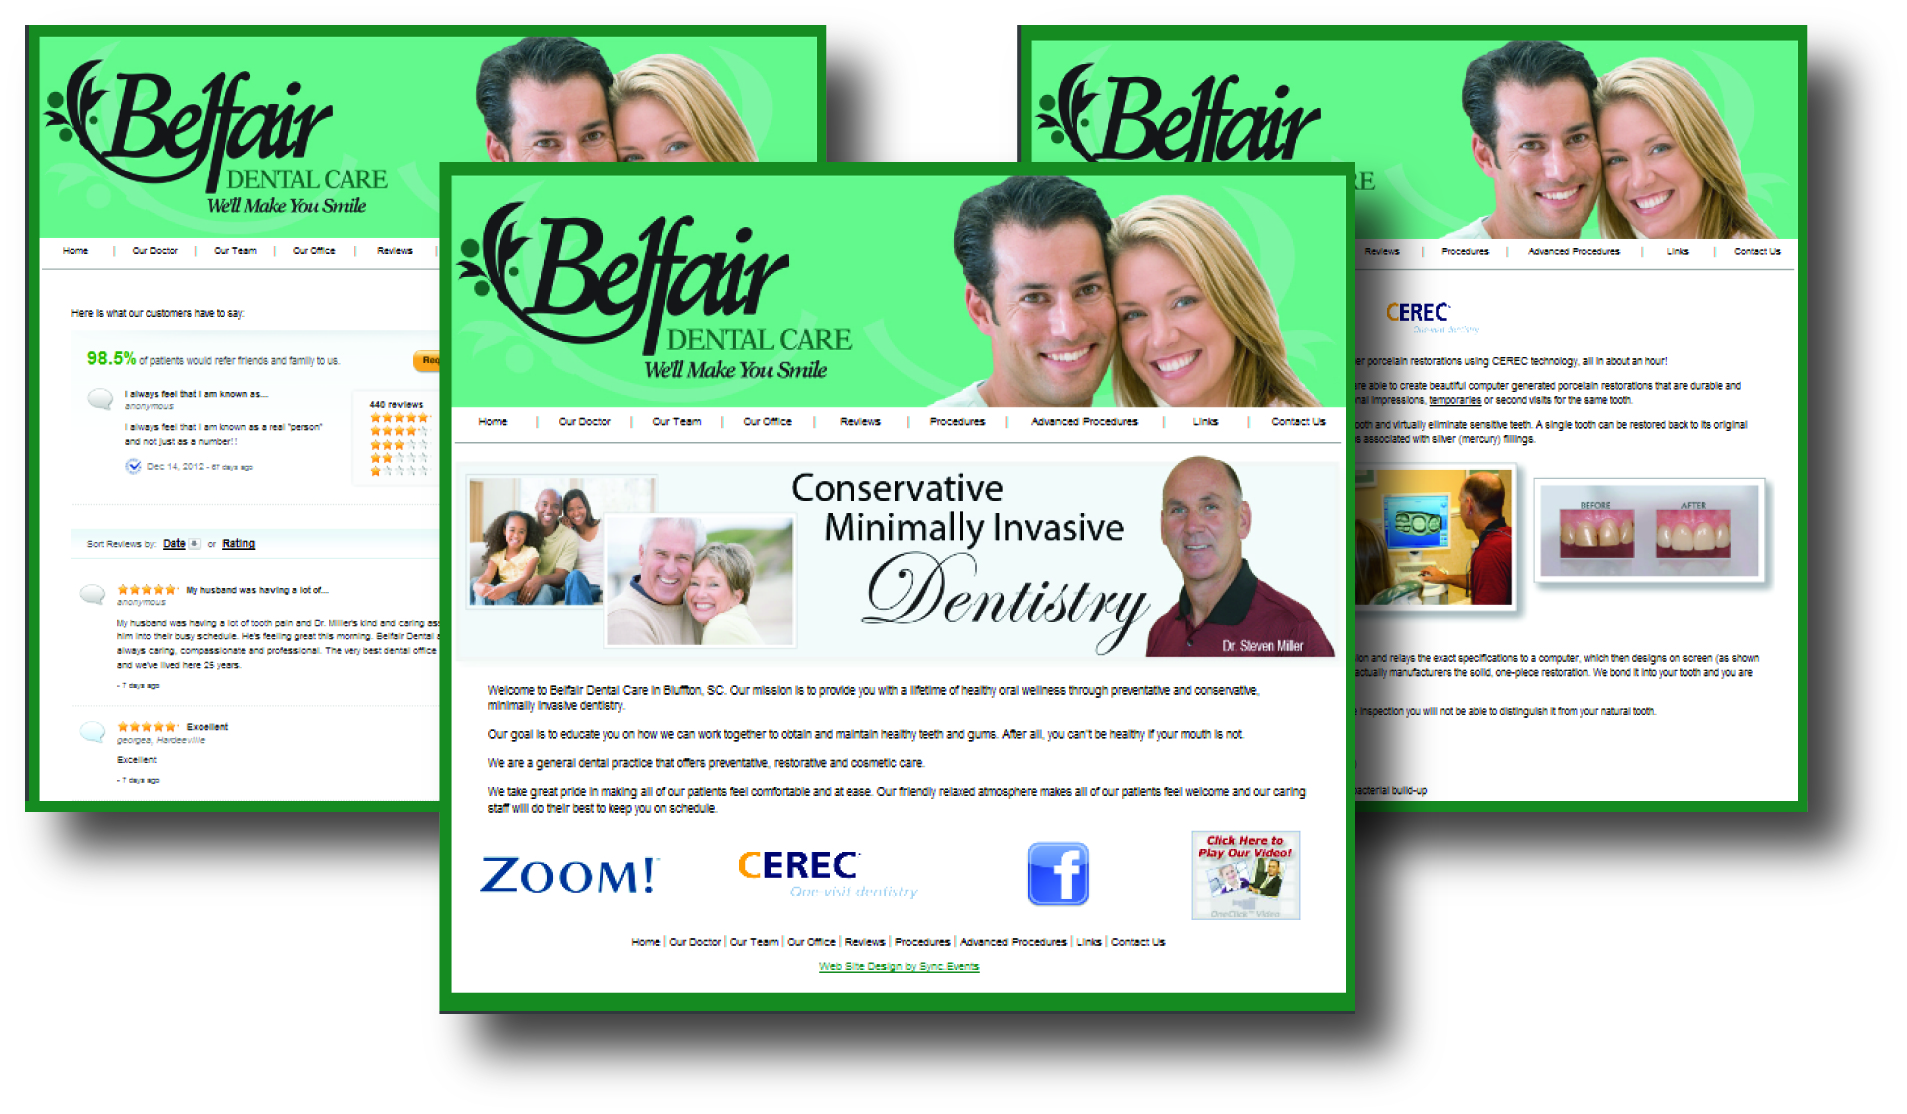 Belfair Dental Care